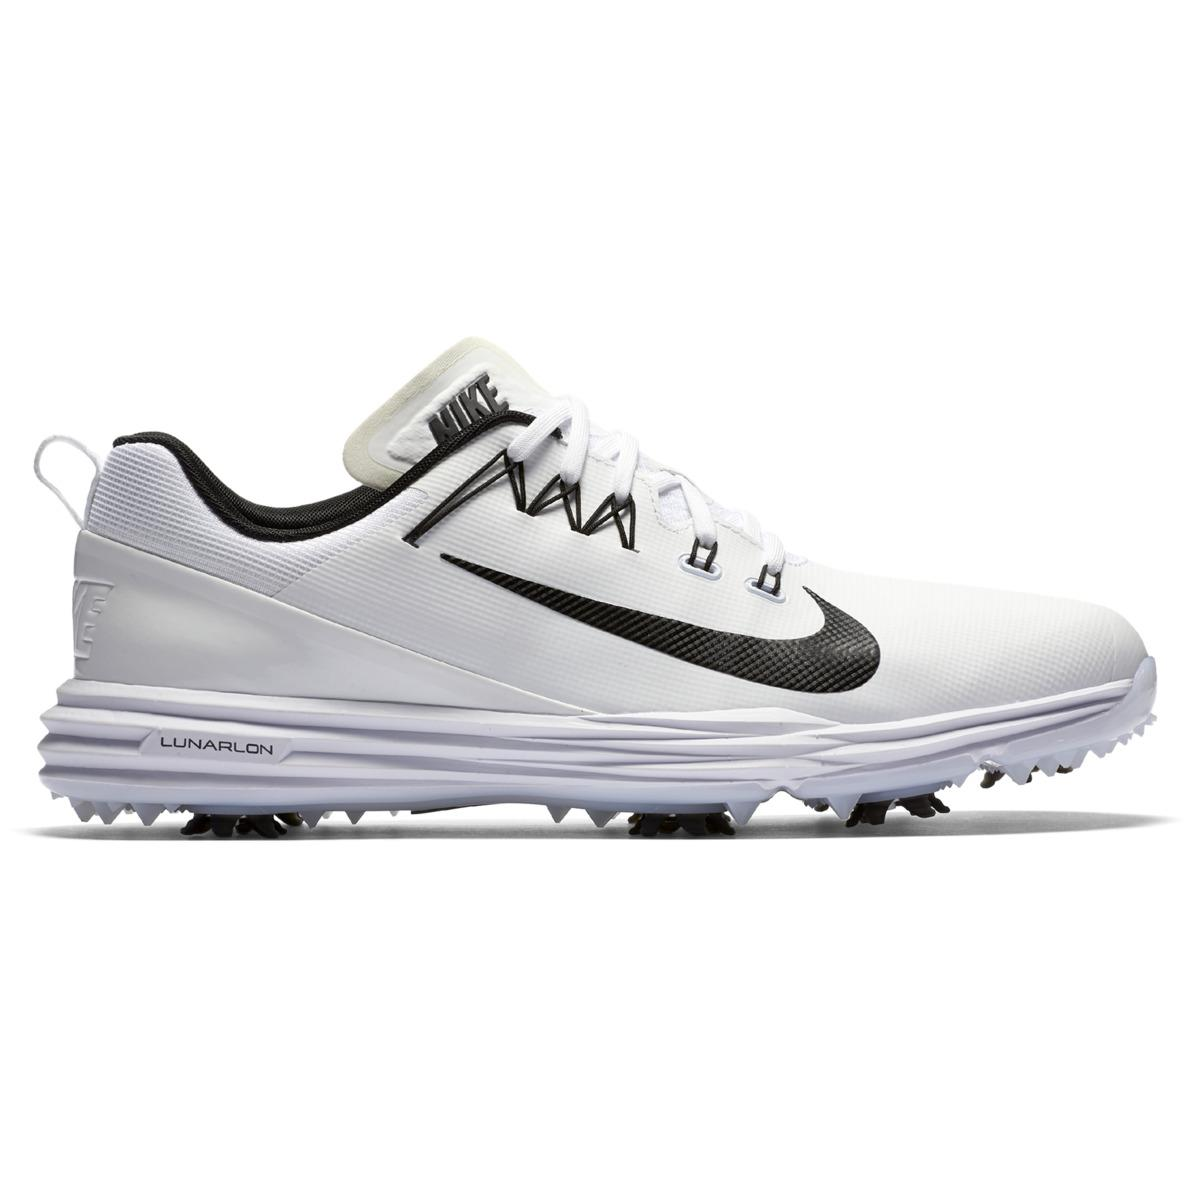 Nike Lunar Command 2 Wide Golf Shoes in White for Men - Lyst cb6b2def802